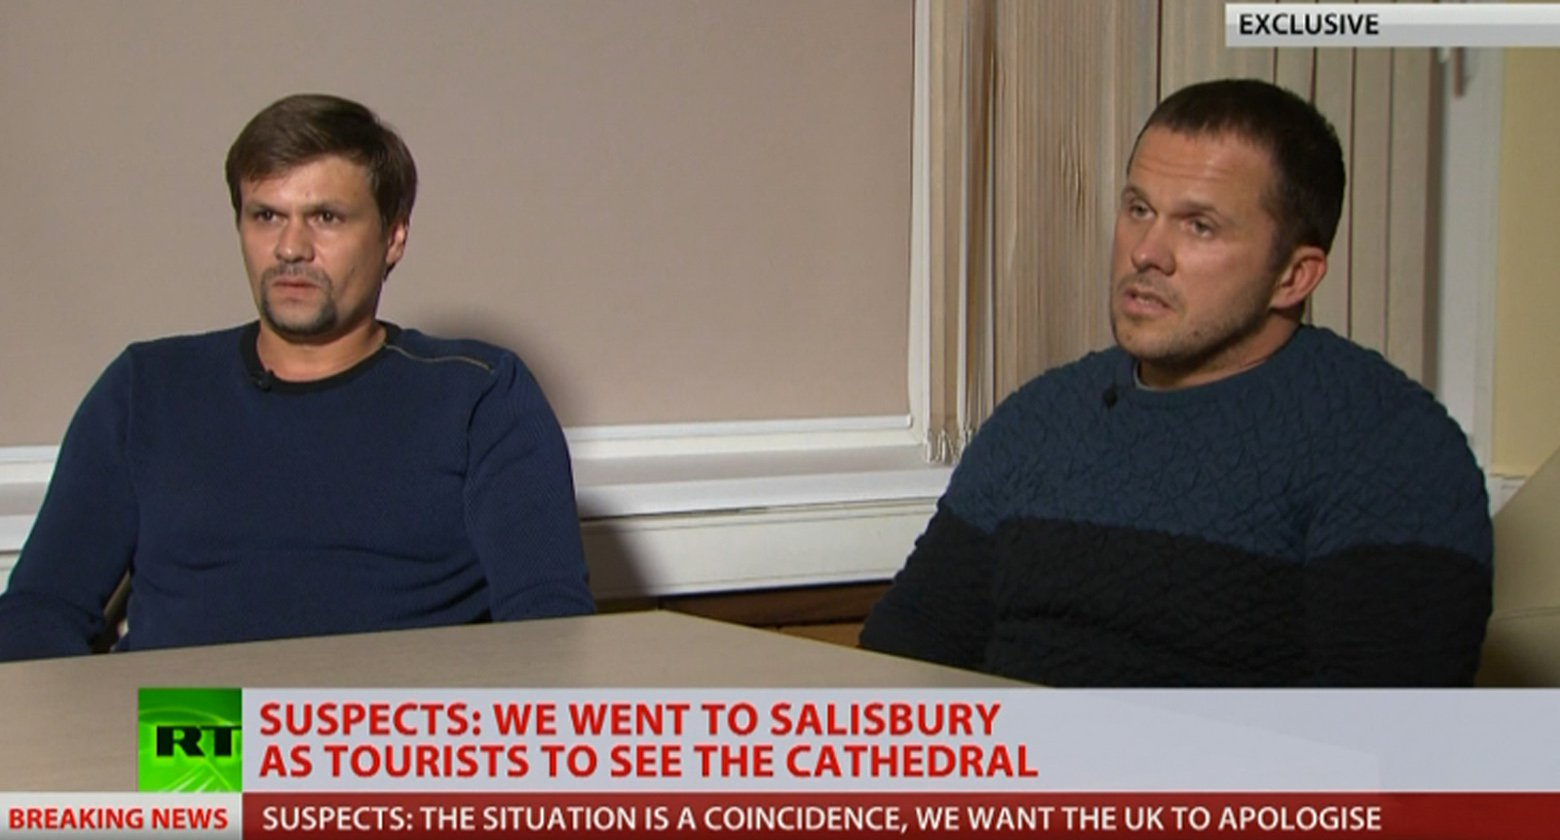 Alexander Petrov and Ruslan Boshirov told RT???s editor-in-chief they had nothing to do with the Skripals??? poisoning and are now scared to go outside, after the UK pointed to them as Russian intelligence agents on a kill mission. The two men reached out to RT editor-in-chief Margarita Simonyan as they wanted to tell their story. ???Well, we came there on March 2, then went to a railway station to see the timetable. We arrived in Salisbury on March 3 and tried to walk through the town, but we lasted for only half an hour because it was covered in snow,??? Petrov said. ???Of course, we went there to see Stonehenge, Old Sarum, but we couldn???t do it because there was muddy slush everywhere. The town was covered by this slush. We got wet, took the nearest train and came back [to London].??? ???We spent no more than an hour in Salisbury, mainly because of the lags between trains,??? Boshirov said.???Maybe we did [approach] Skripal???s house, but we don???t know where is it located.??? When Margarita Simonyan asked the two men whether they had Novichok or any poison with them, the emphatically said no. Then she asked whether they had the Nina Ricci perfume bottle that has been shown as evidence. ???Is it silly for decent lads to have women???s perfume? The customs are checking everything, they would have questions as to why men have women???s perfume in their luggage. We didn???t have it.??? - Boshirov said. Both Petrov and Boshirov sounded distressed as they spoke about how their lives had changed since they were named in the UK as Russian intelligence agent, who attempted to poison the Skripals. ???When your life turned upside down, you don???t know what to do and where to go. We???re afraid of going out, we fear for ourselves, our lives and lives of our loved ones,??? Boshirov said. On 13 September 2018 at 16:27, Will Stewart wrote: